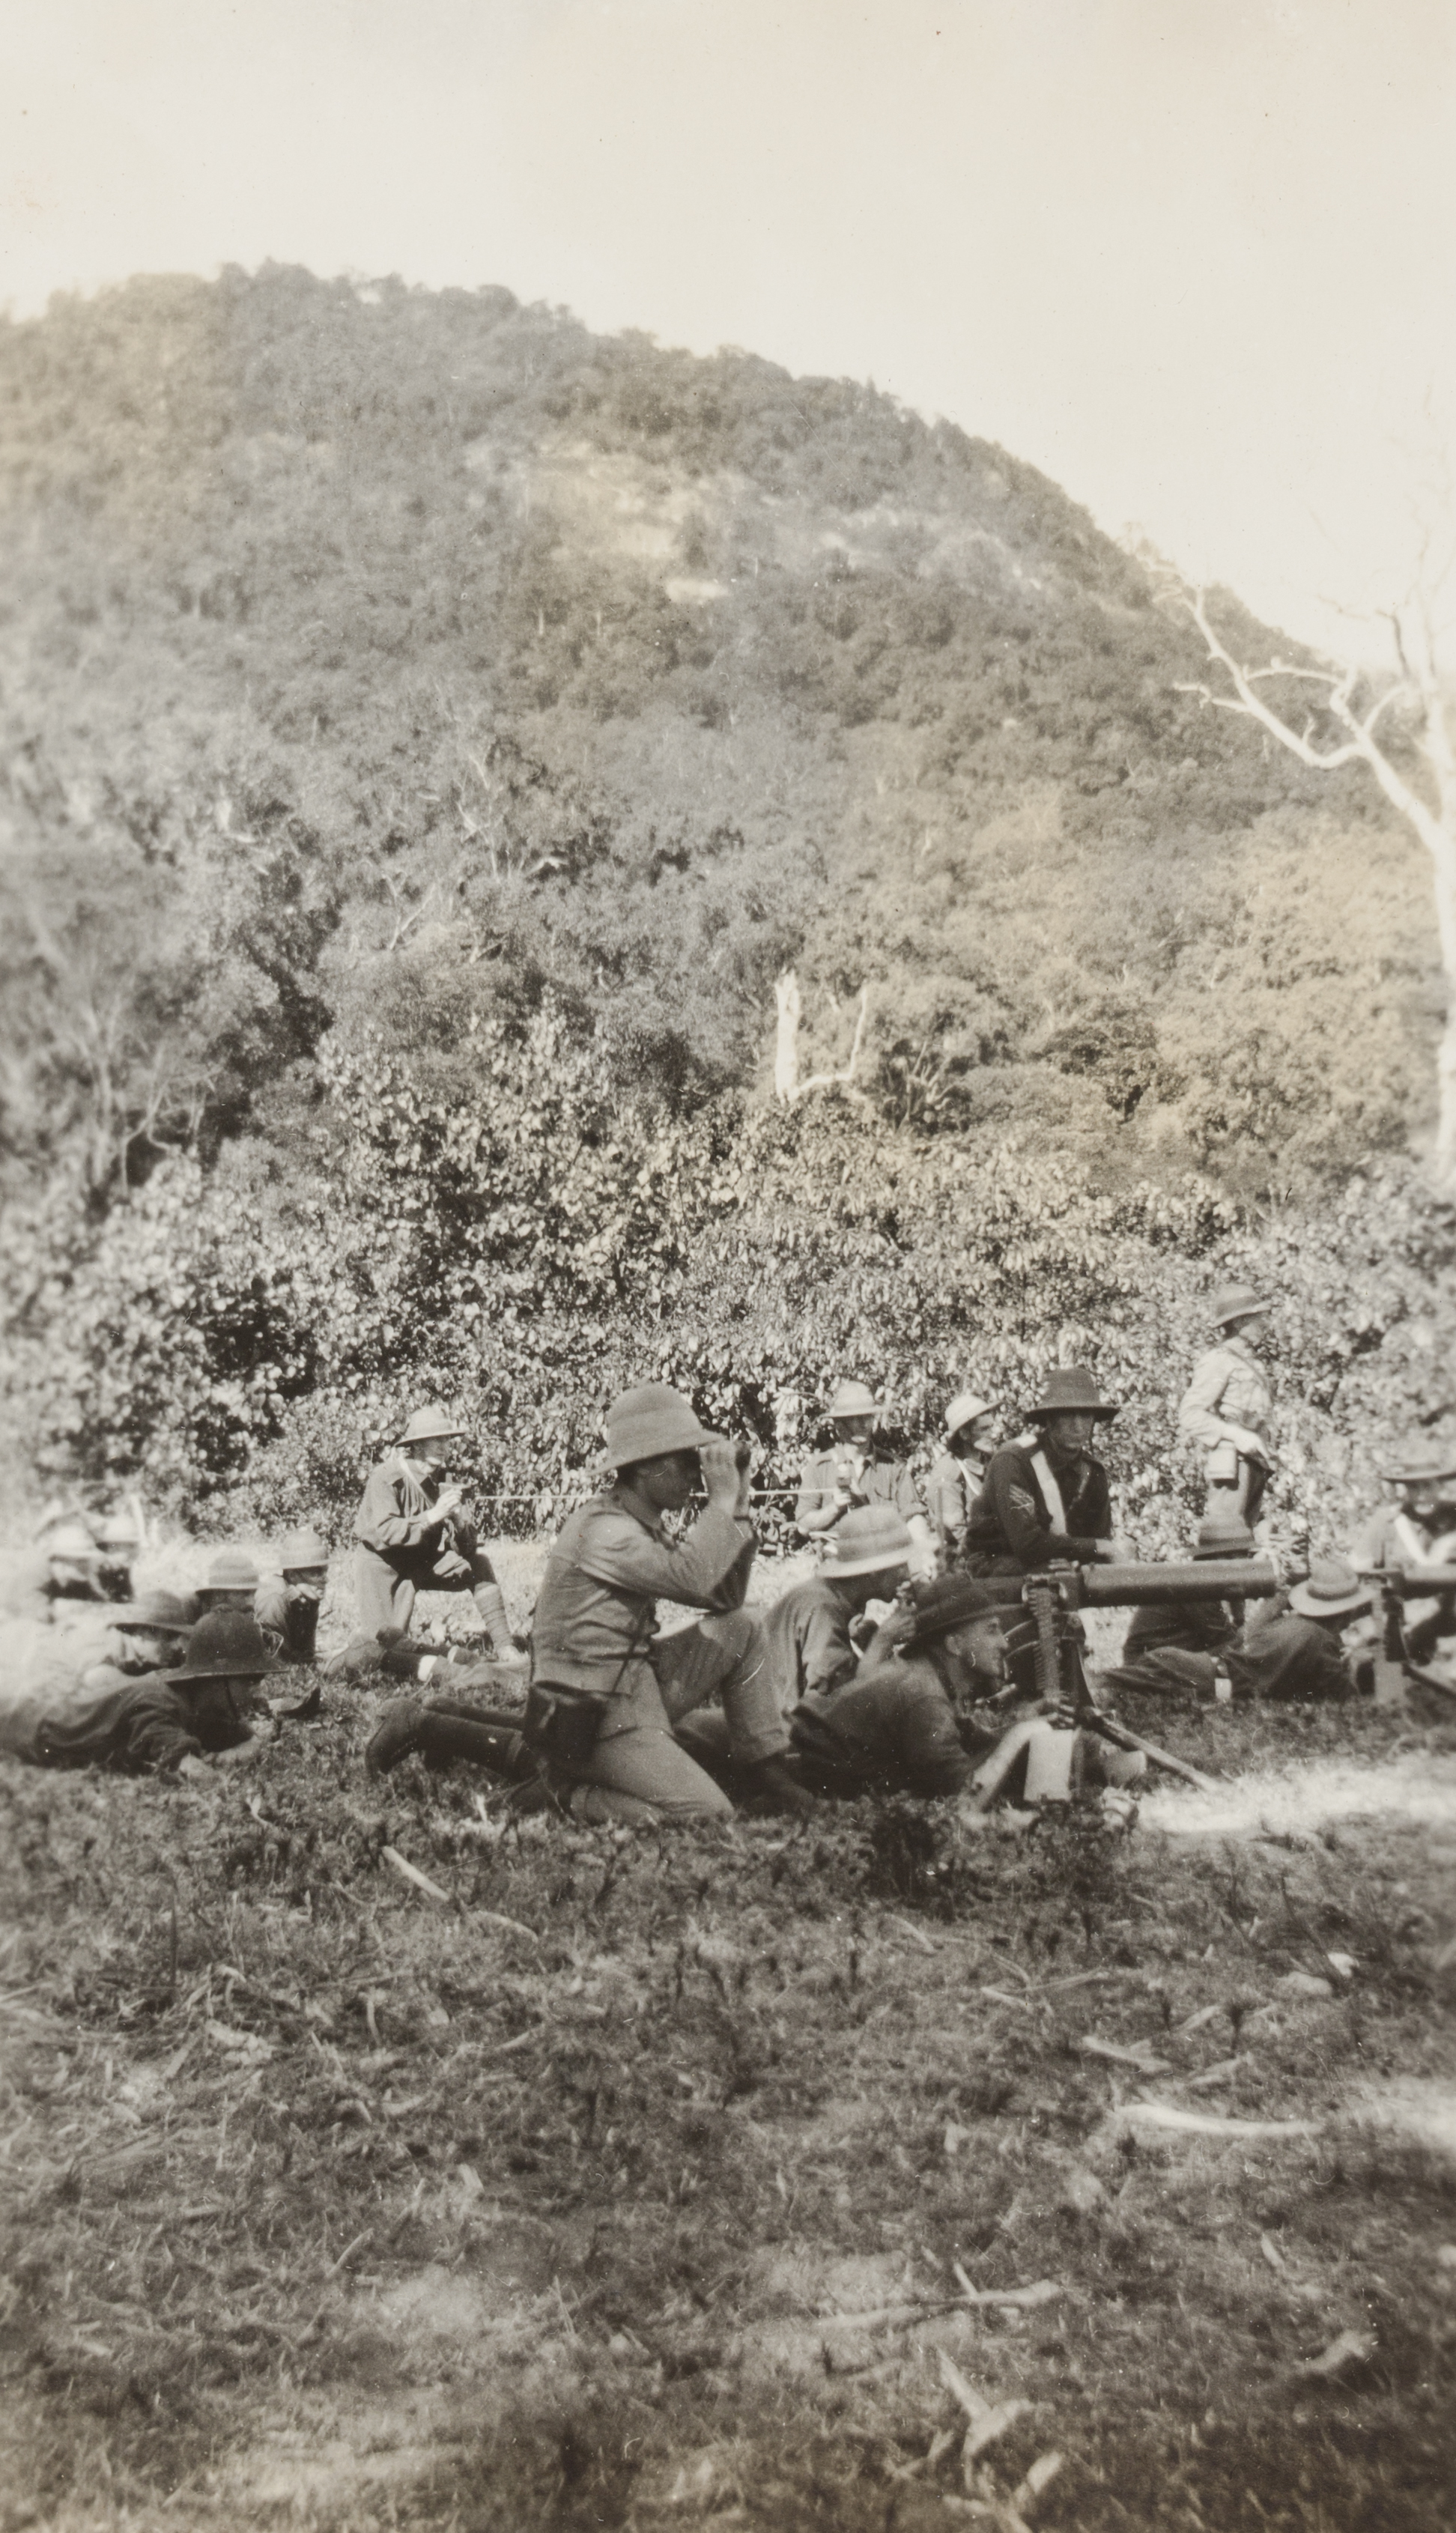 Australian troops training at Palm Island, 1914, F. S. Burnell, PXA 2165